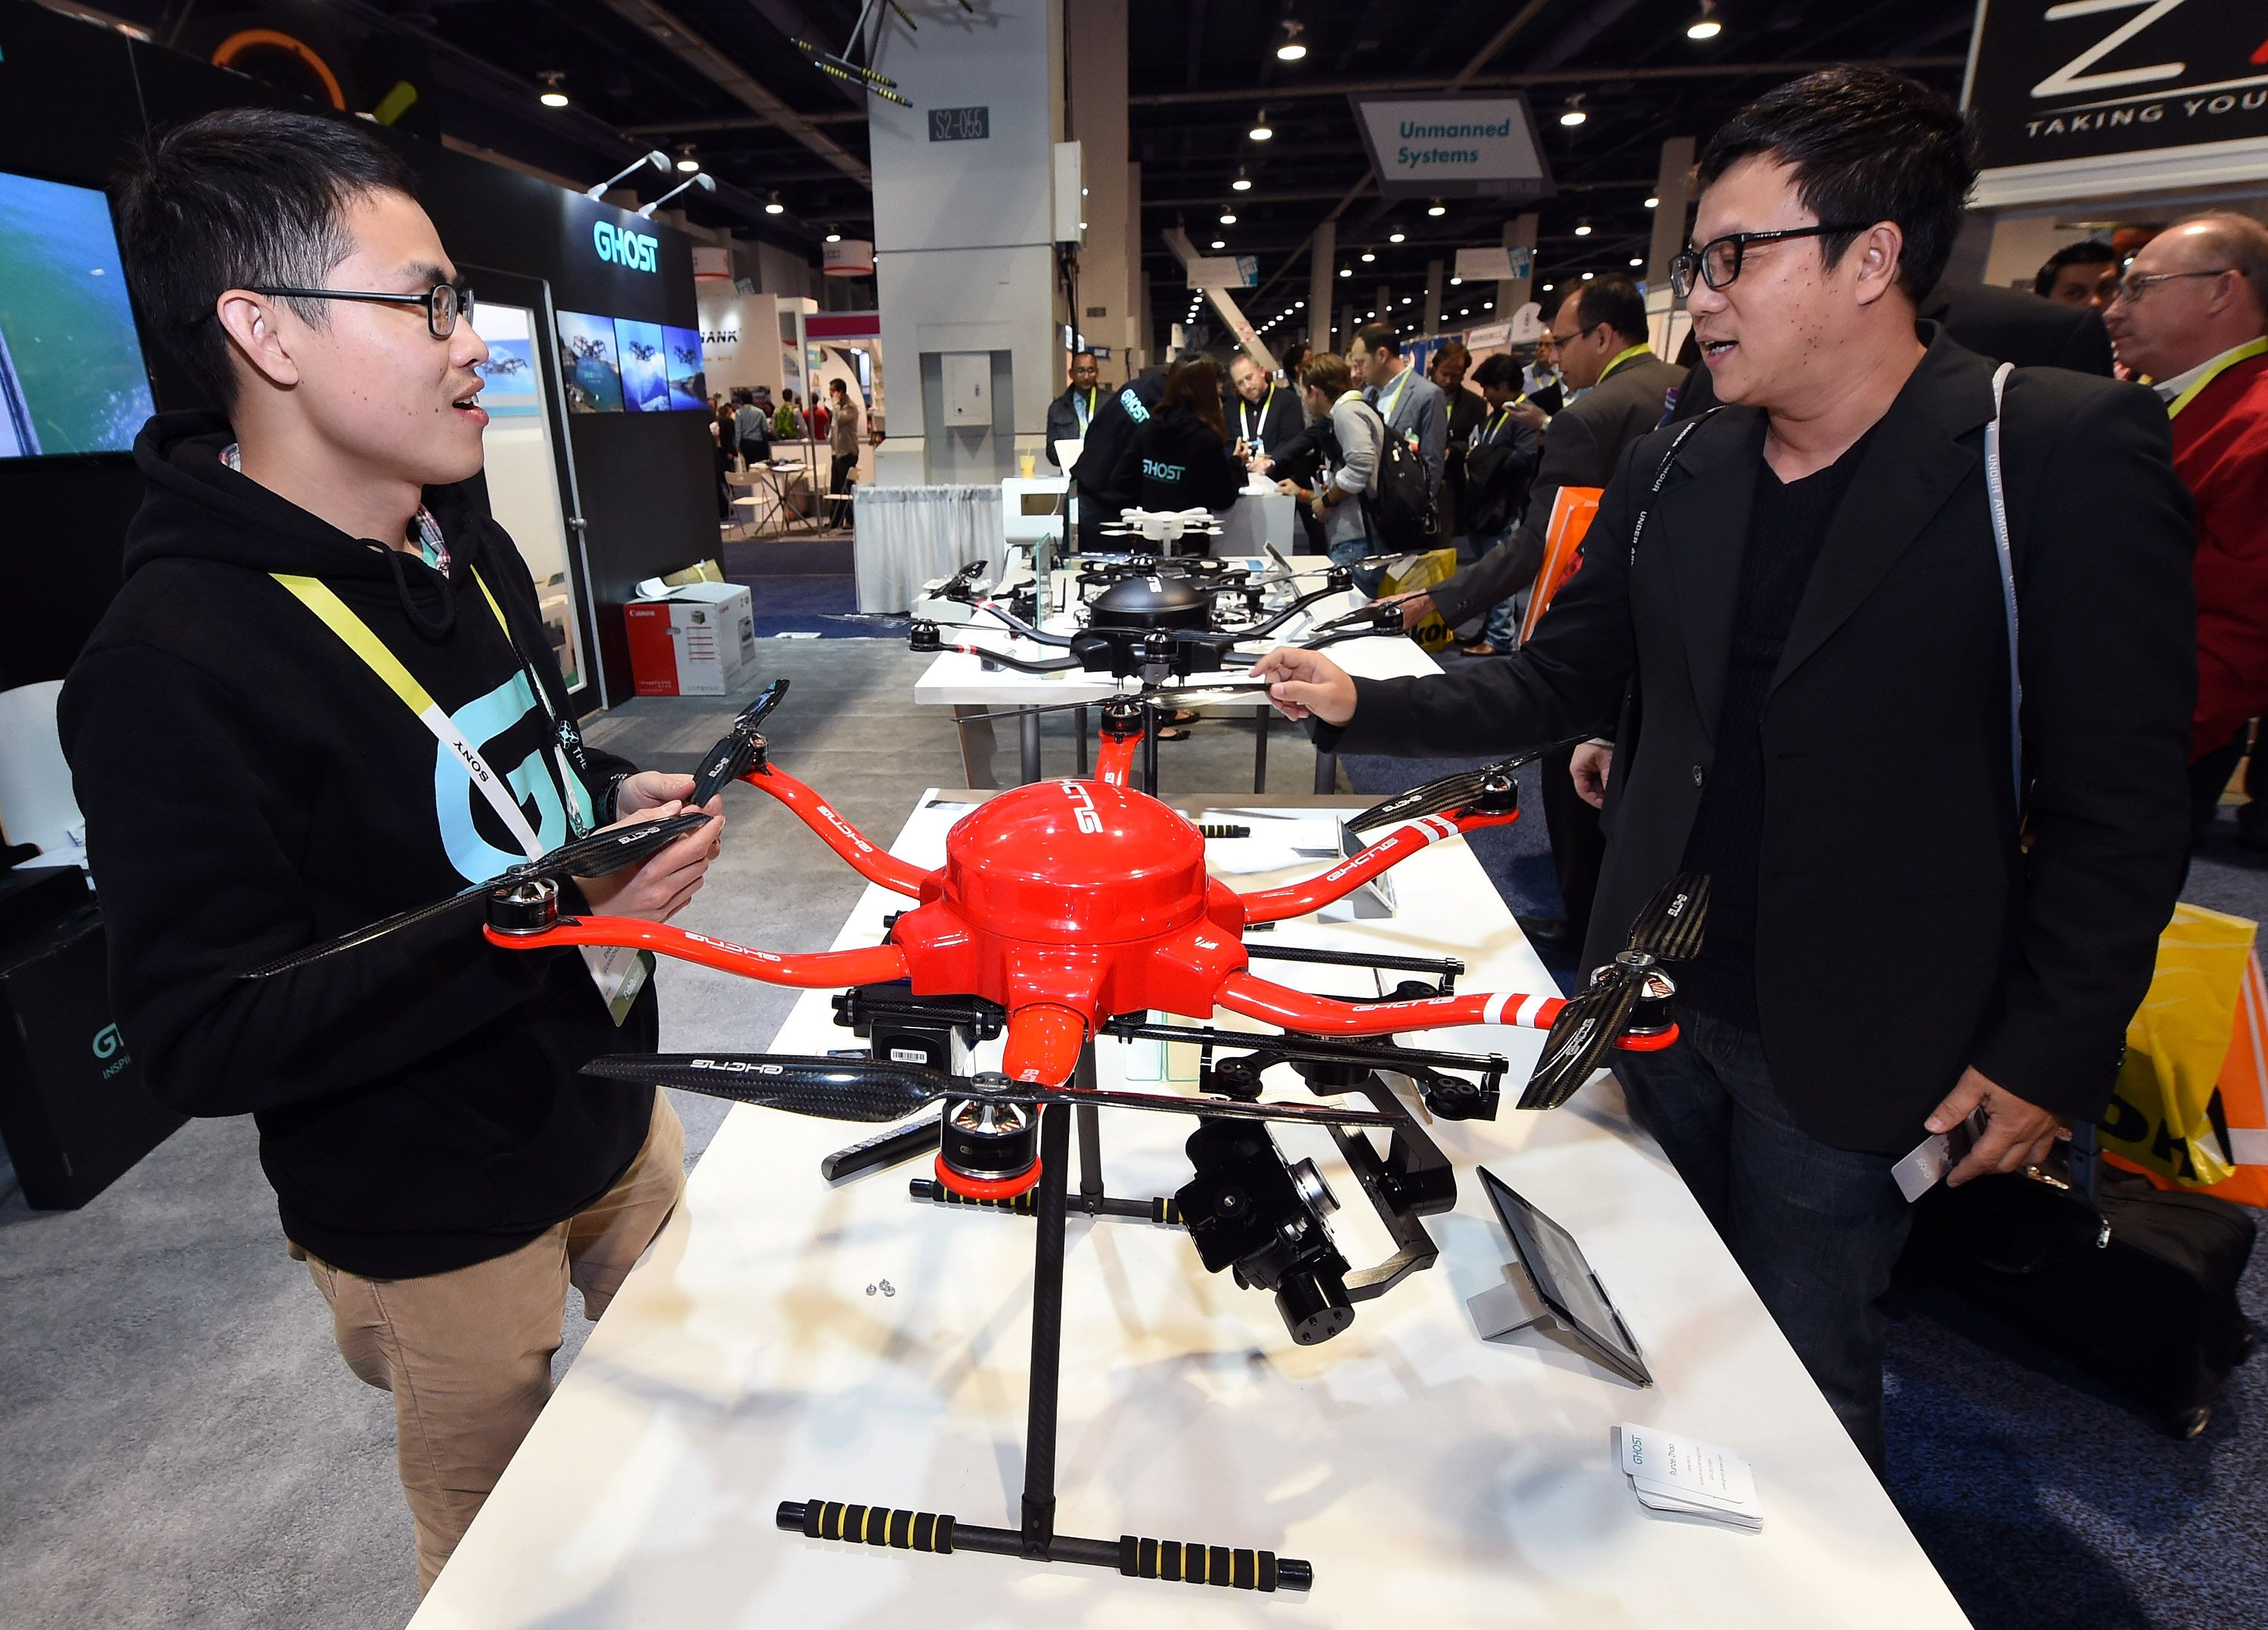 Consumer asking about drone at trade show